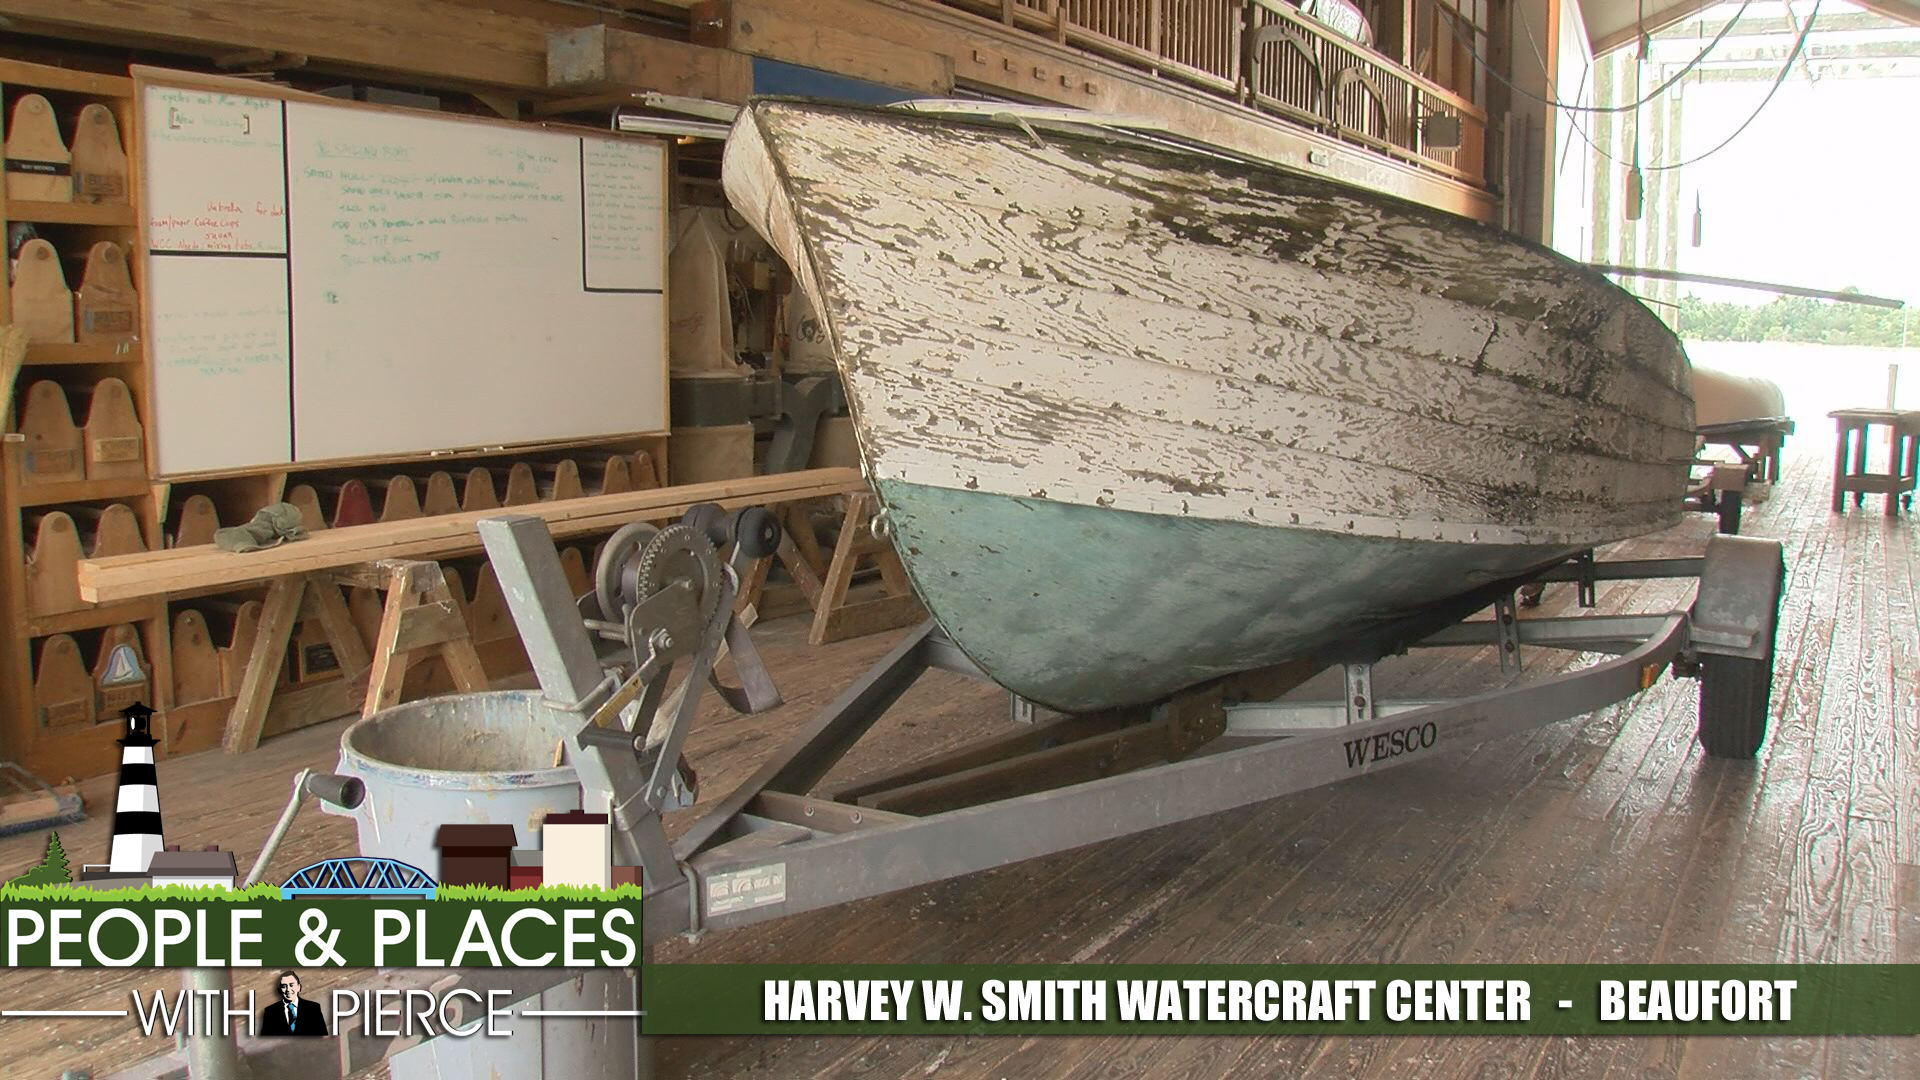 harvey w smith watercraft center ppp for web_413743